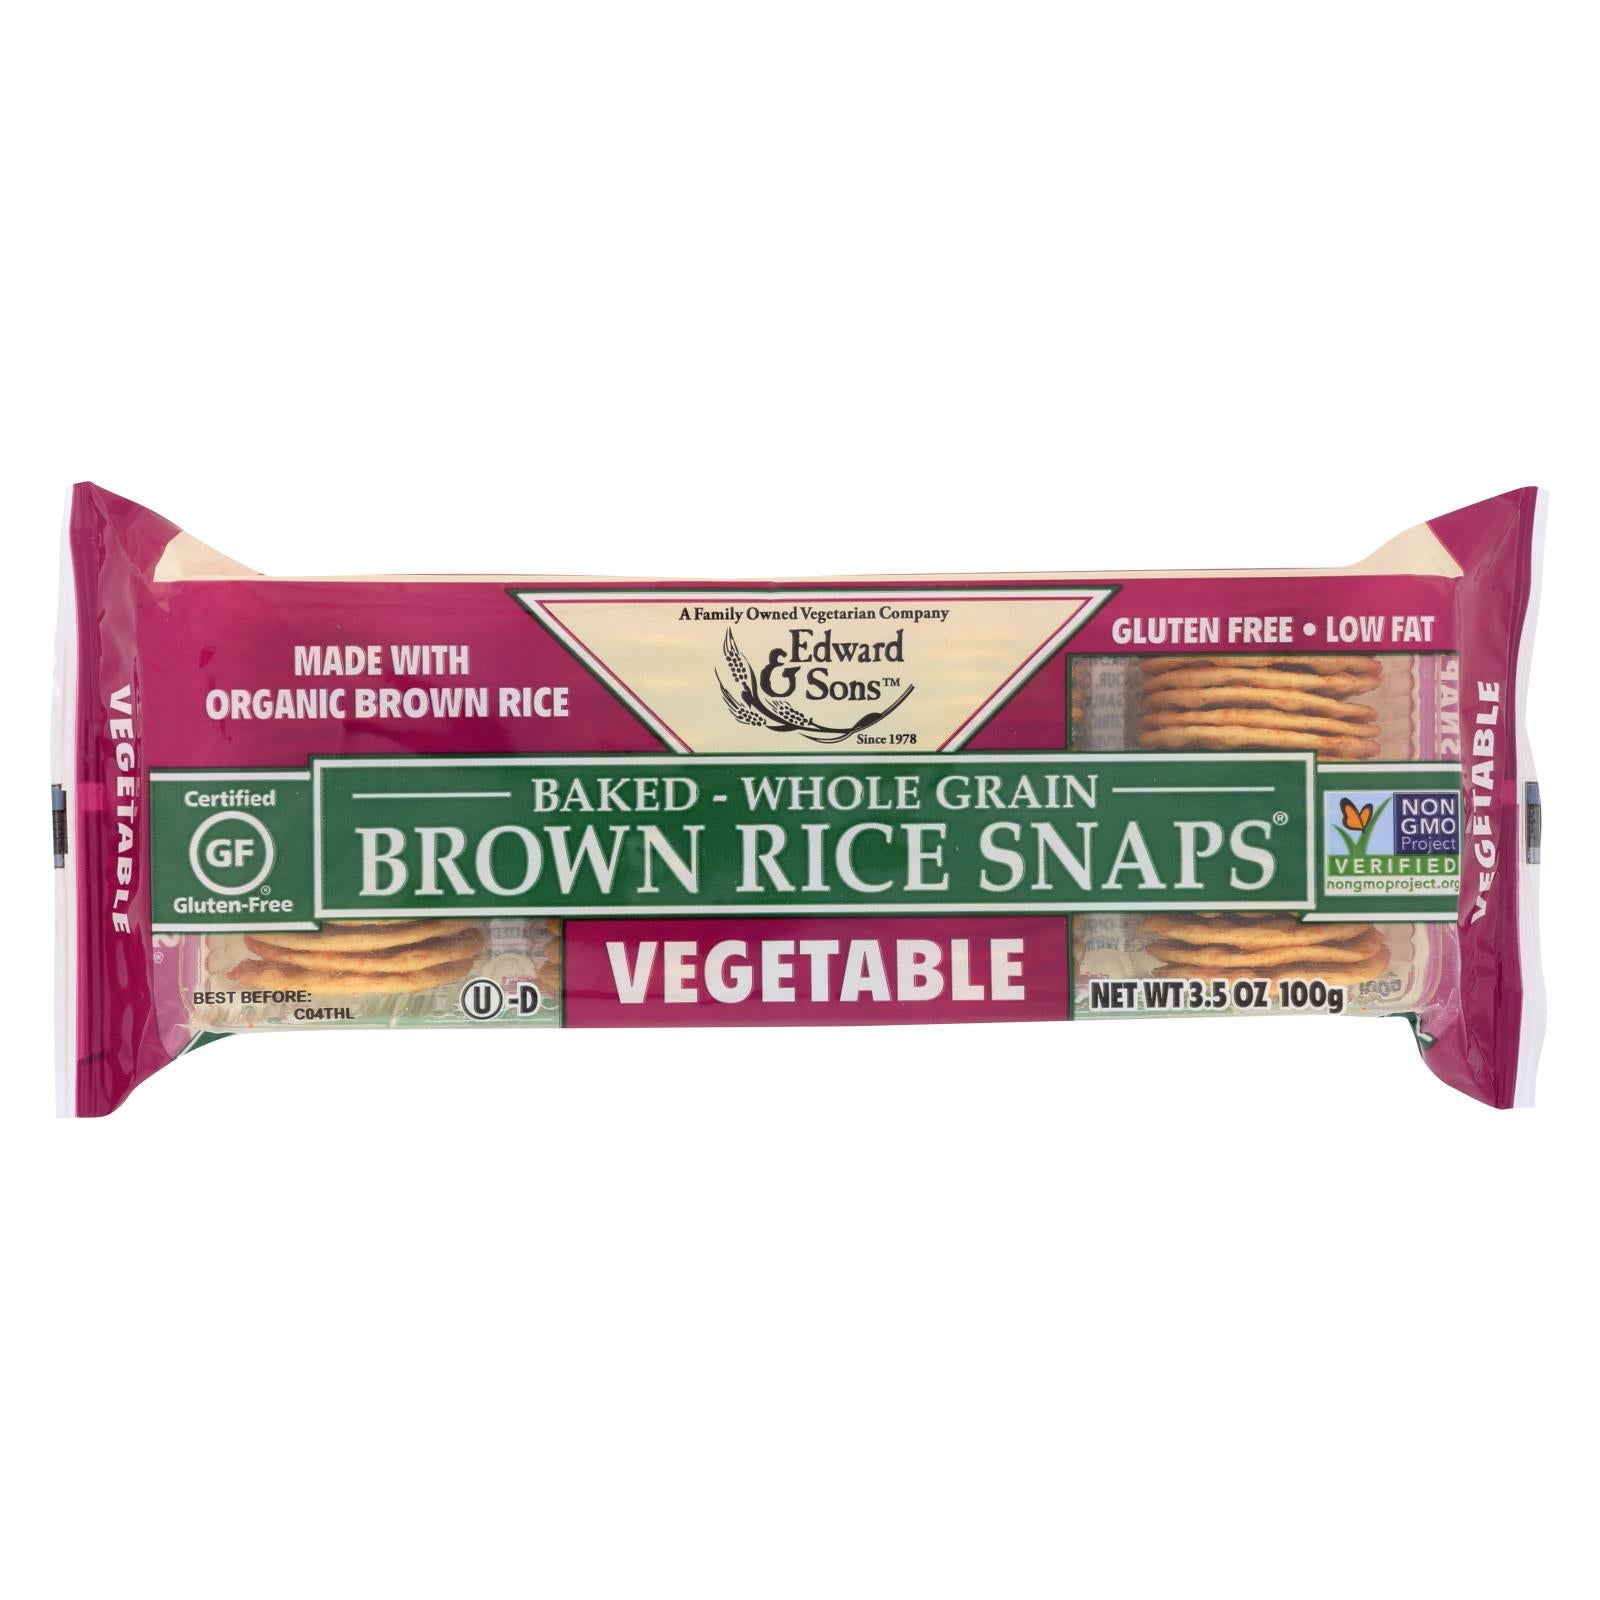 Edward And Sons Organic Vegetable Brown Rice Snaps - Case Of 12 - 3.5 Oz. HG0436121